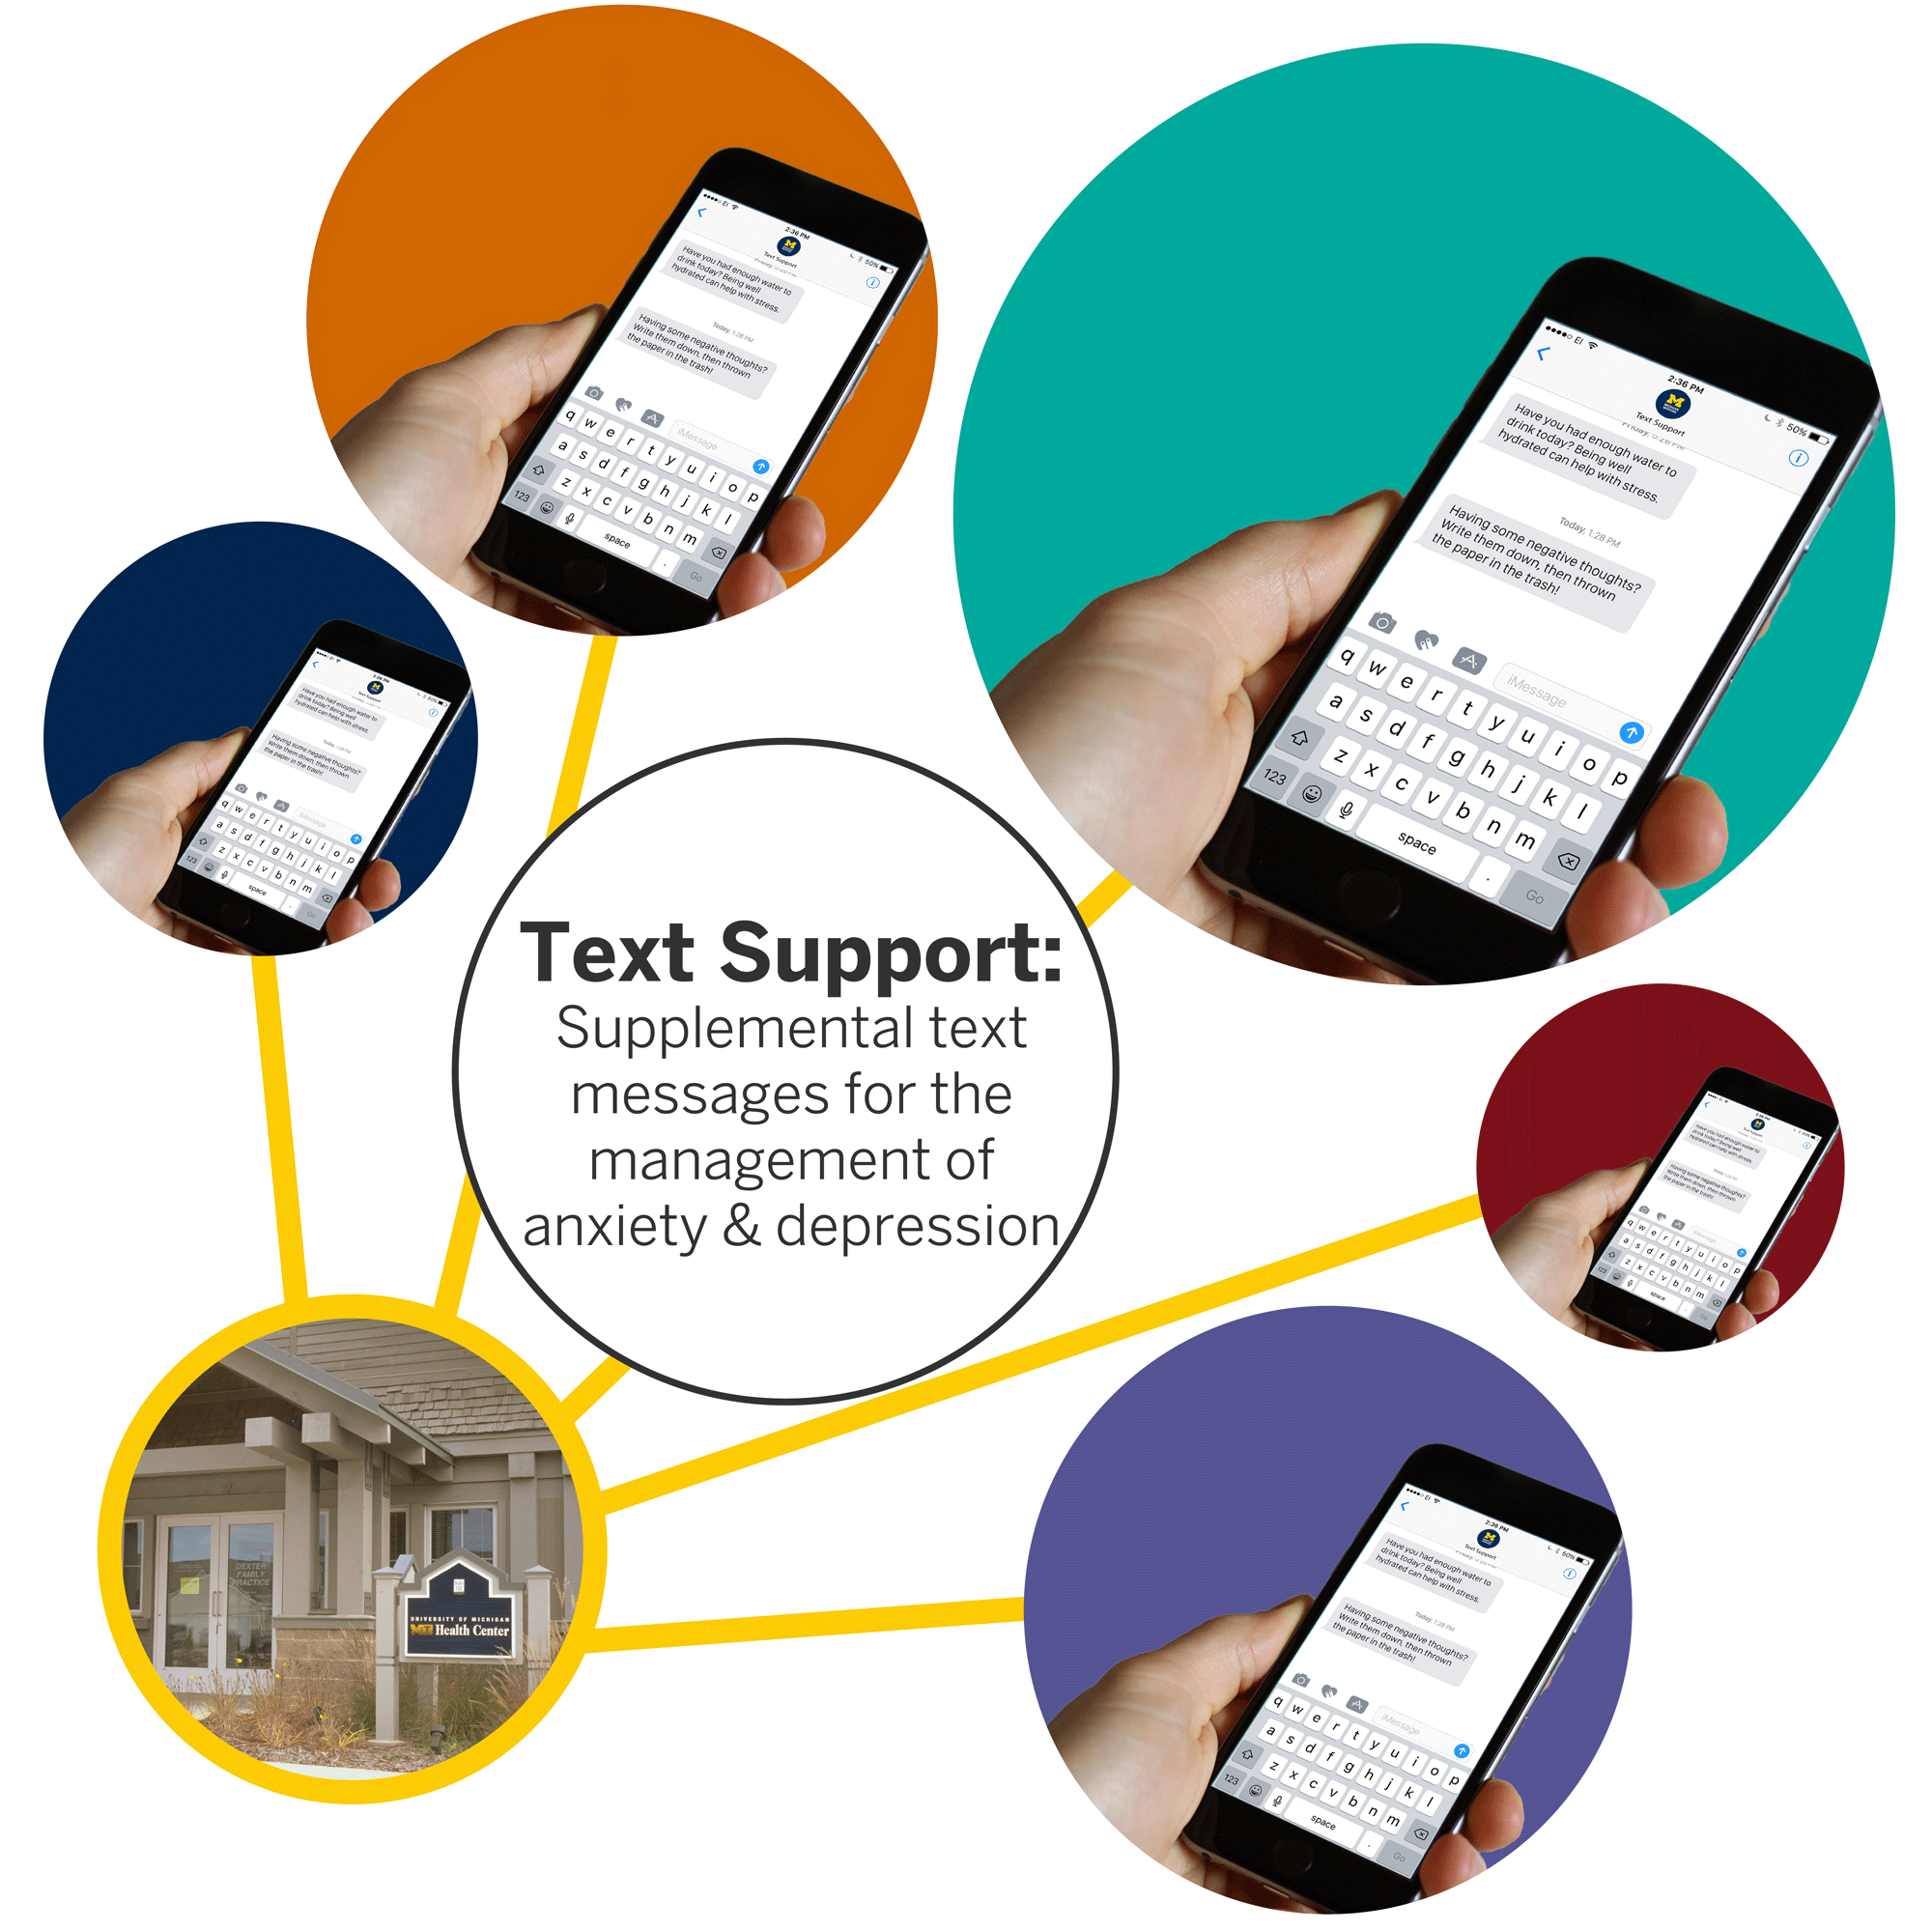 text message support pilot program - supplemental text messages fro the management of anxiety and depression